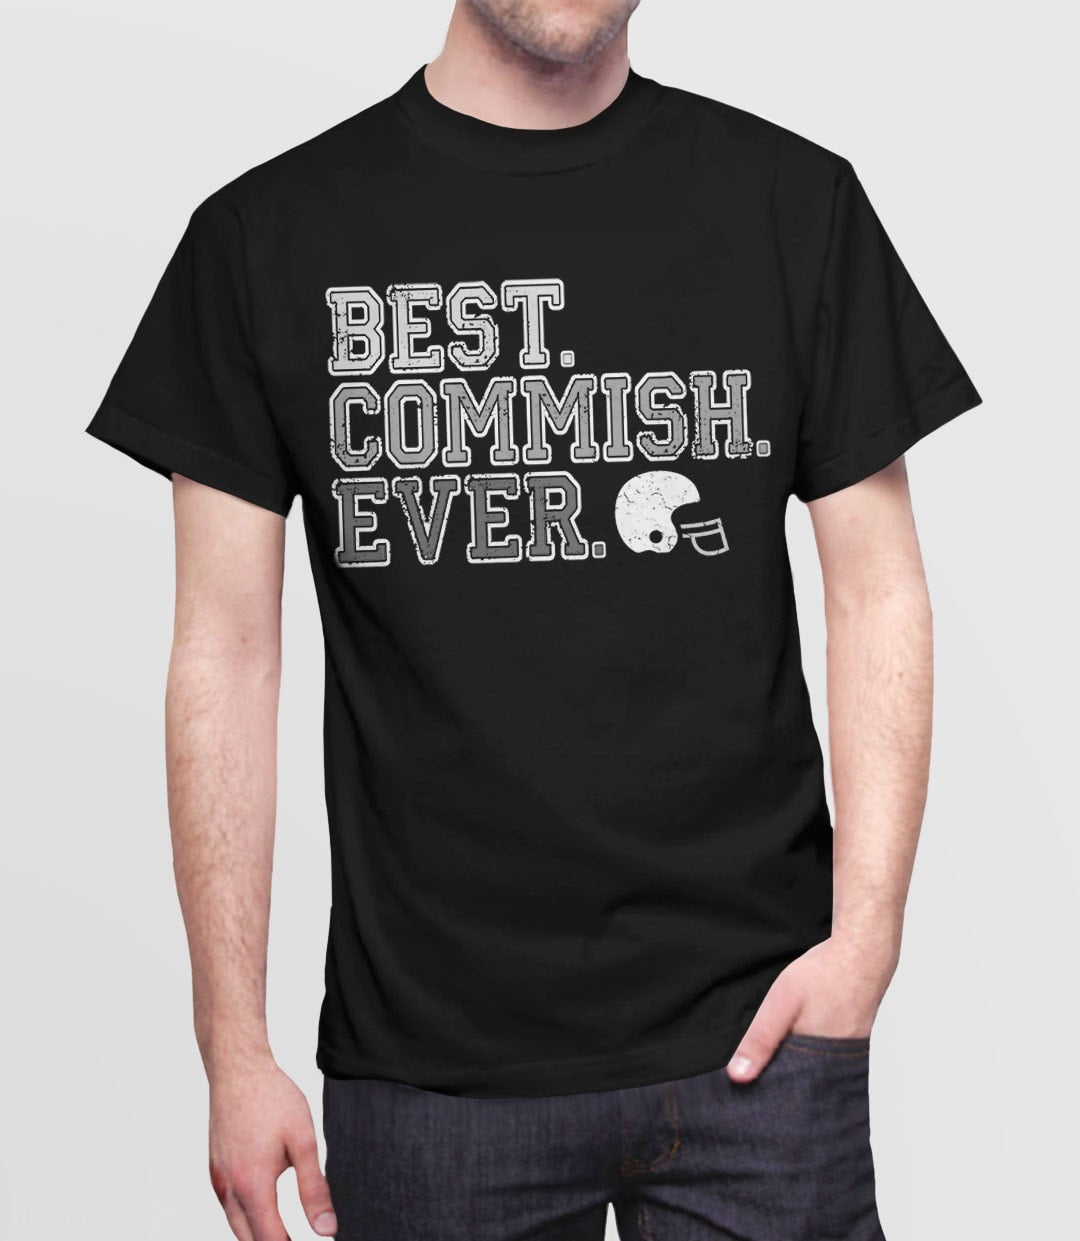 Best Commish Ever, Black Mens (Unisex) Tee by BootsTees